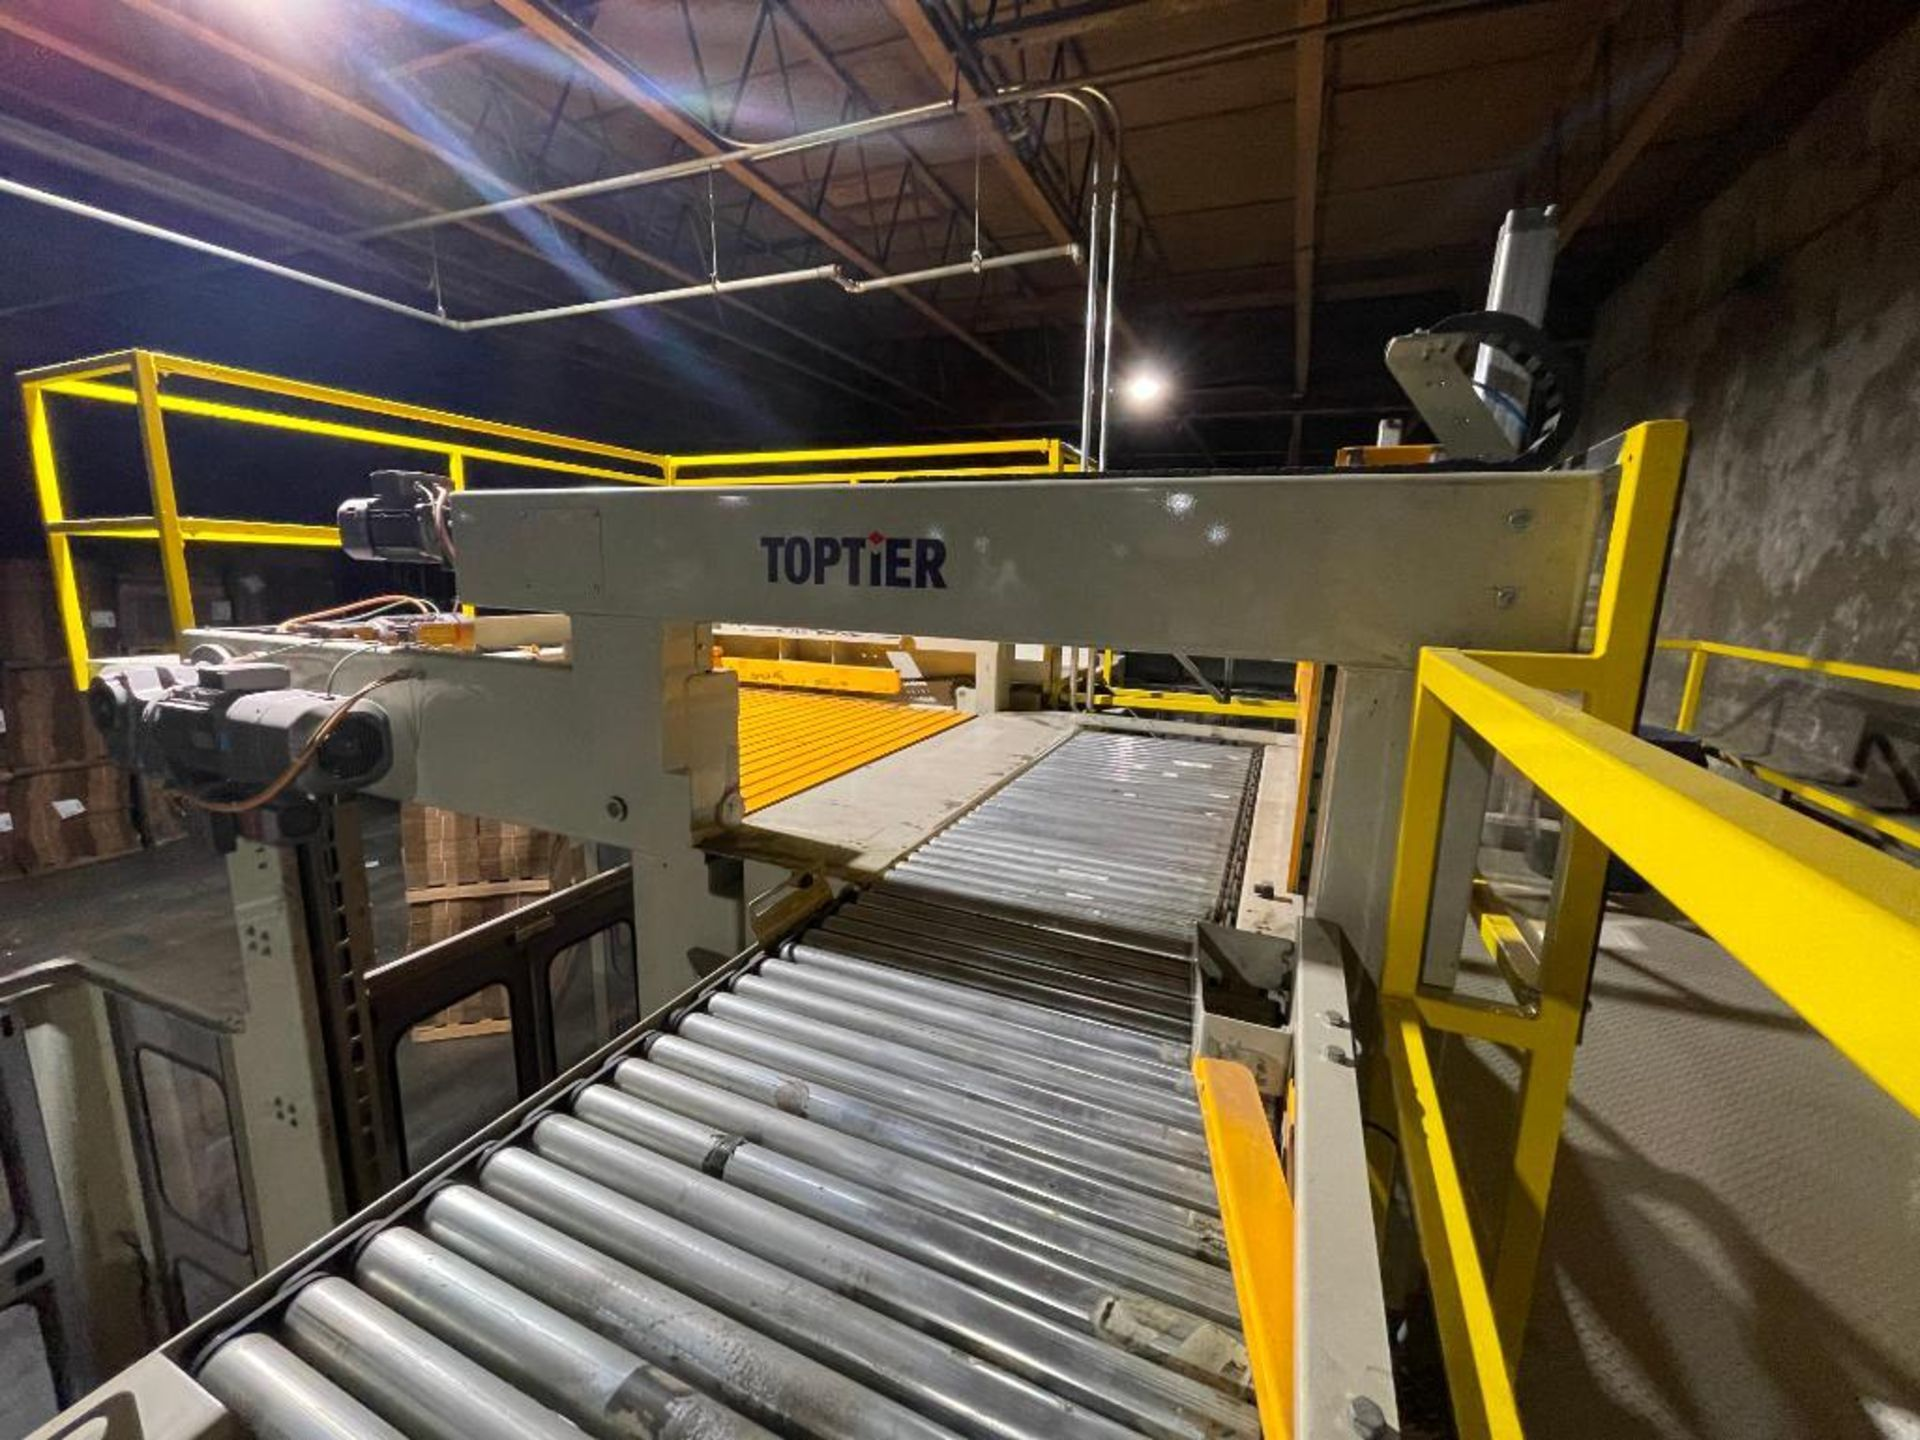 2013 TopTier downstacker, model DS with integrated TopTier pallet wrapper - Image 54 of 66